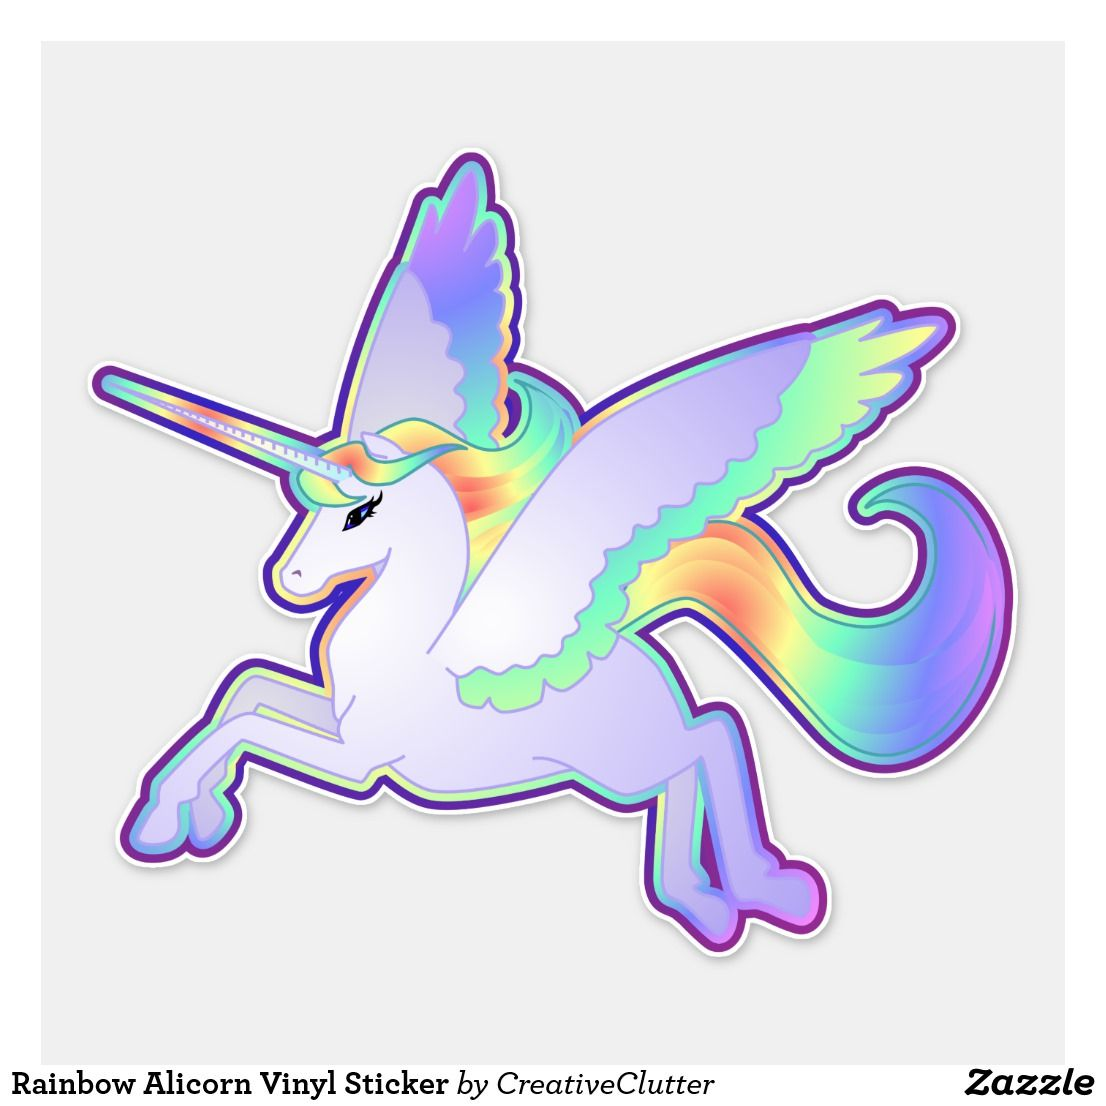 Rainbow Alicorn Vinyl Sticker Zazzle Com With Images Vinyl